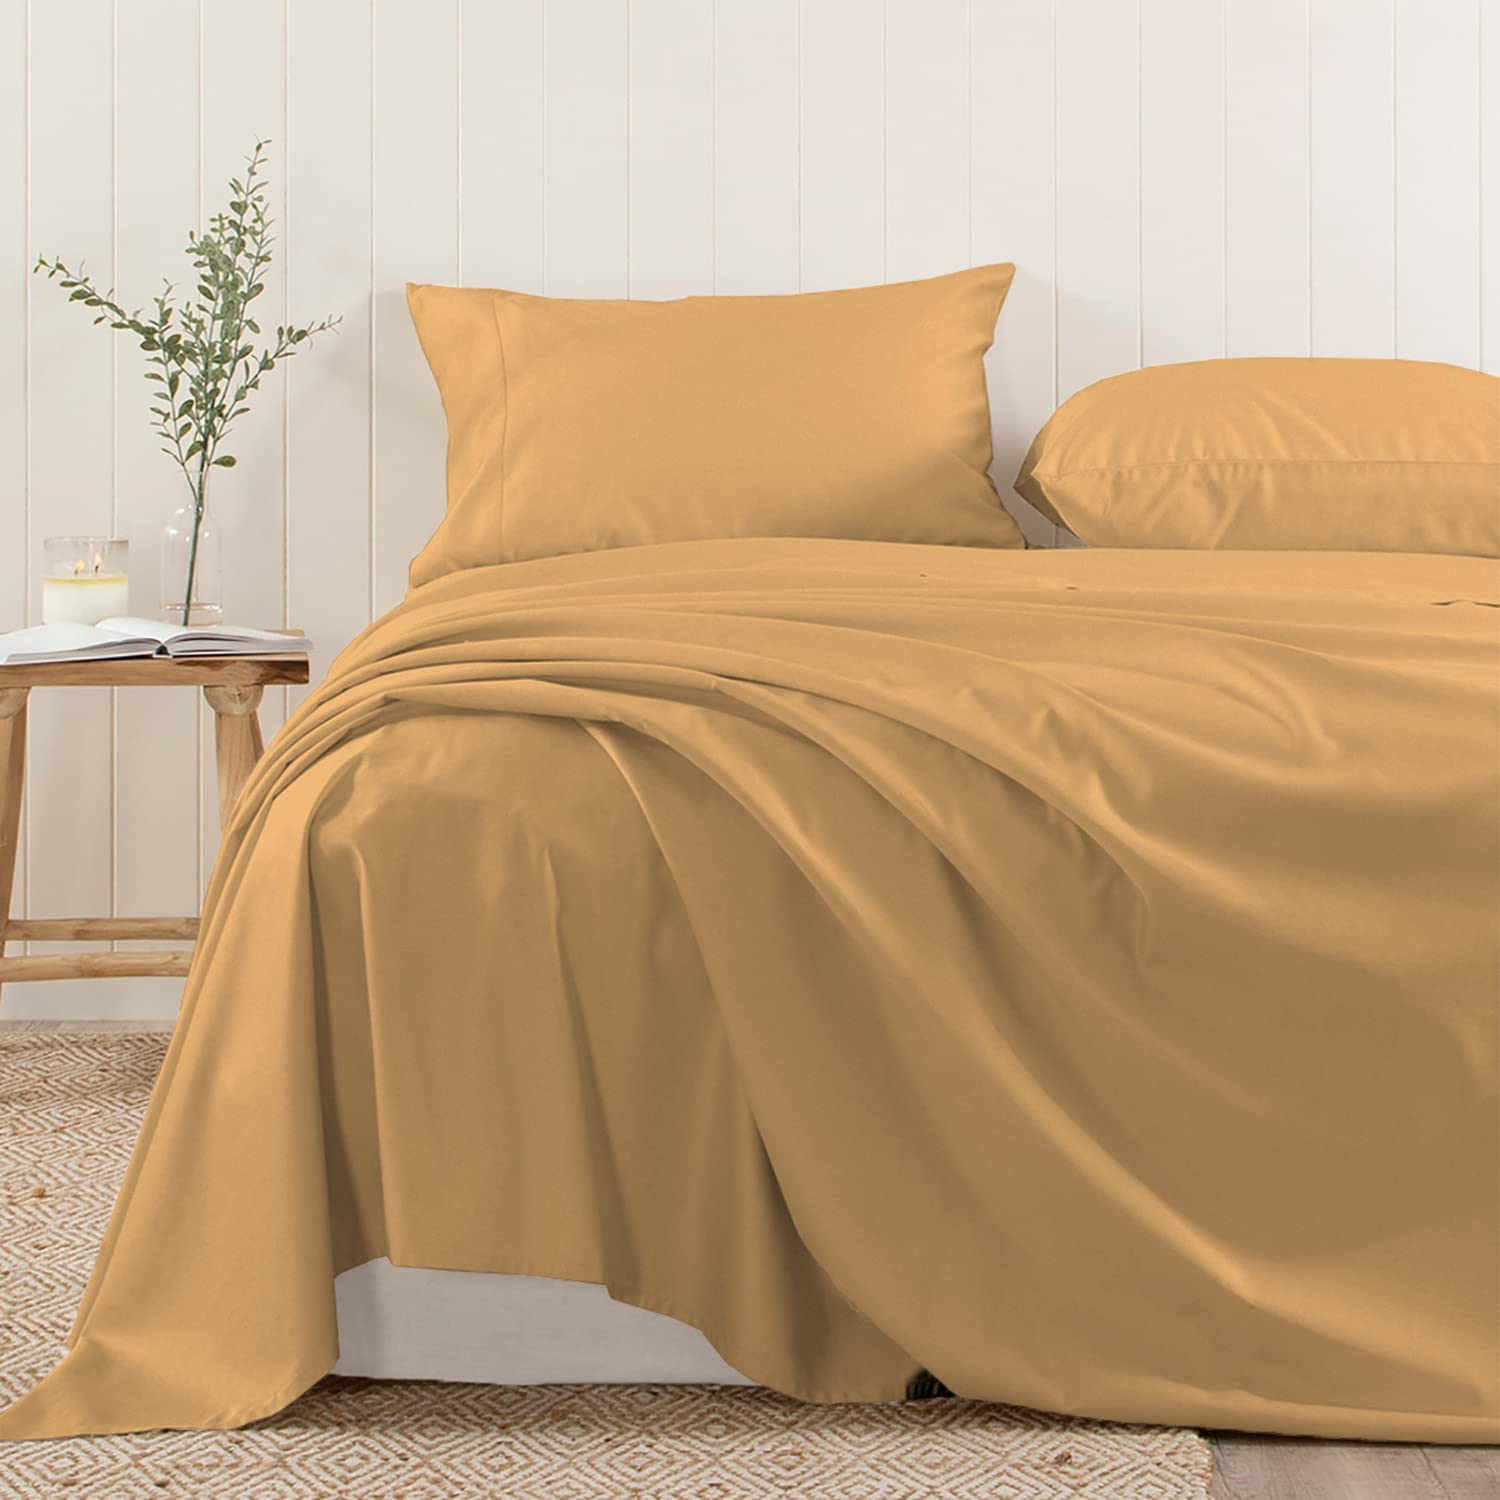 Pizuna Soft 400 Thread Count Cotton King Super beauty Excellence product restock quality top Yel Mustard Sheets Flat